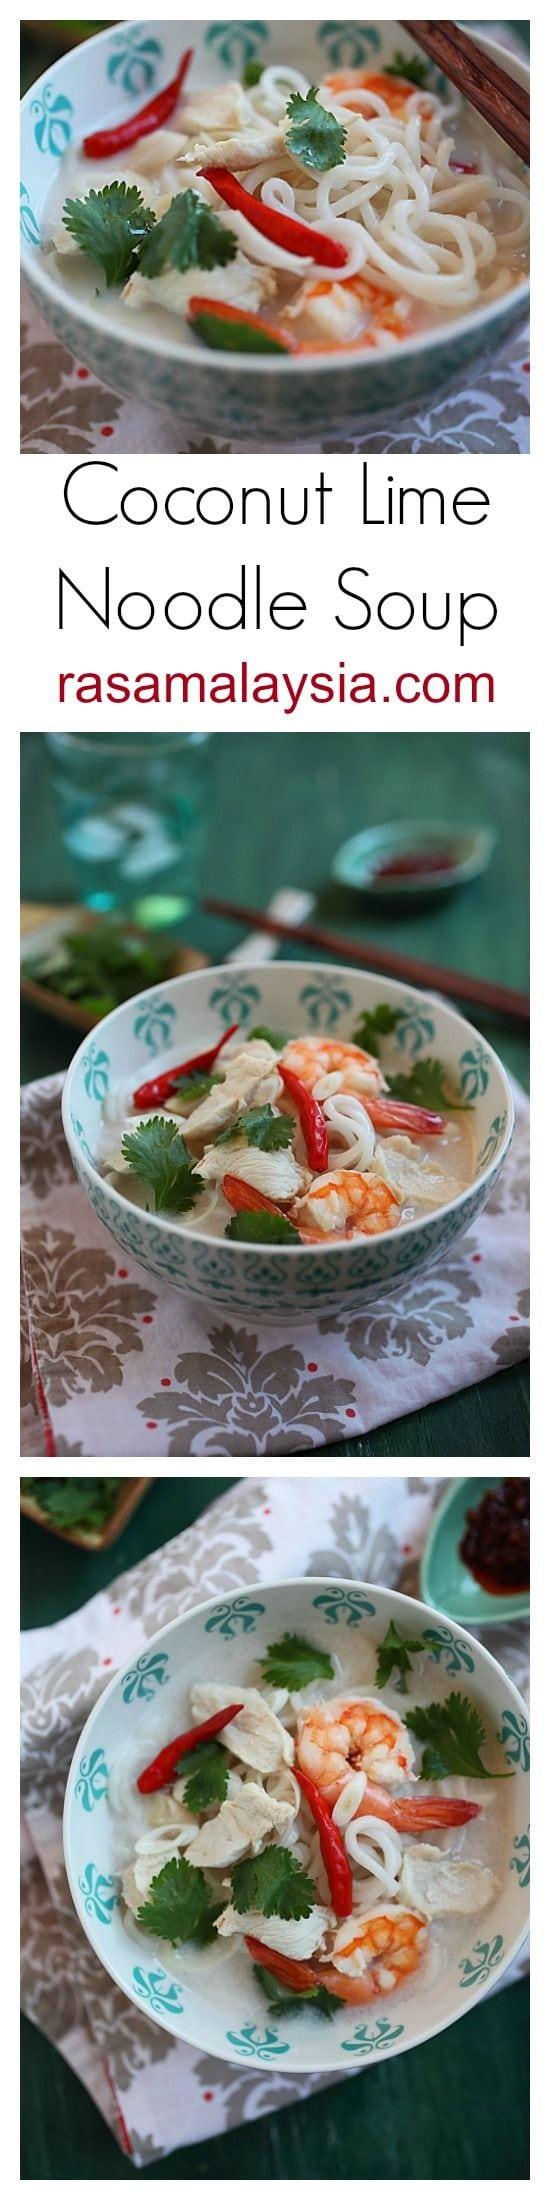 Coconut Lime Noodle Soup | Easy Delicious Recipes